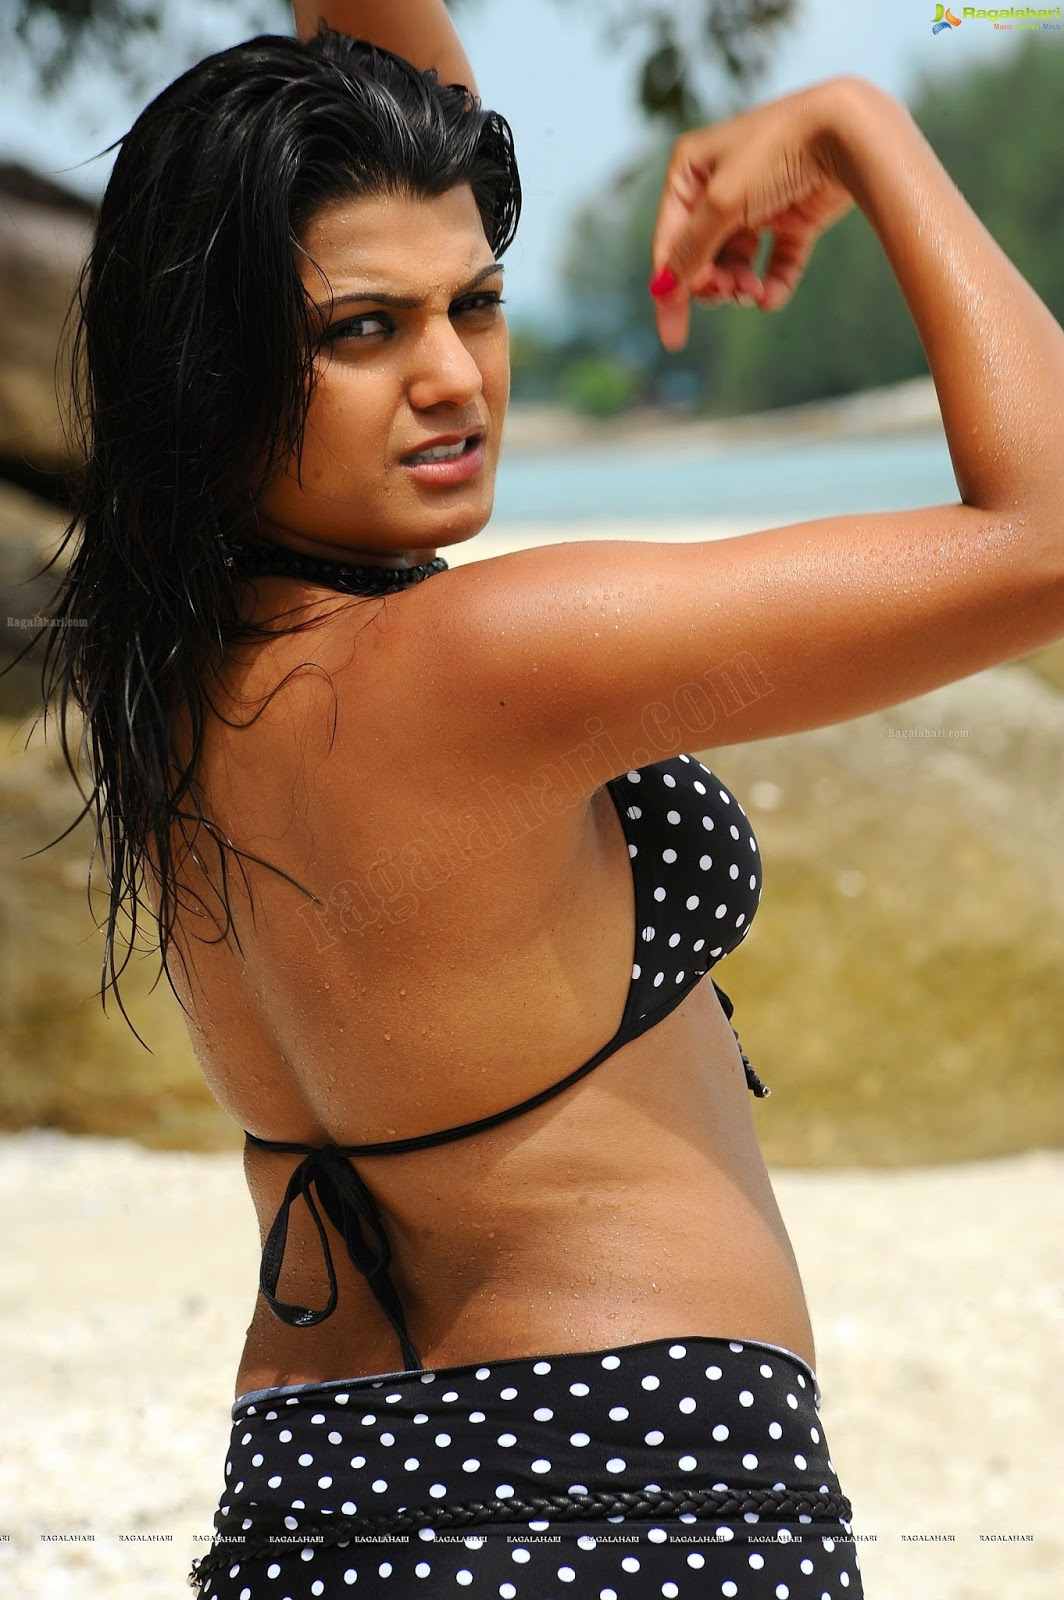 Tashu Kaushik Showing Her Armpit,Navel & Thighs In black bikni